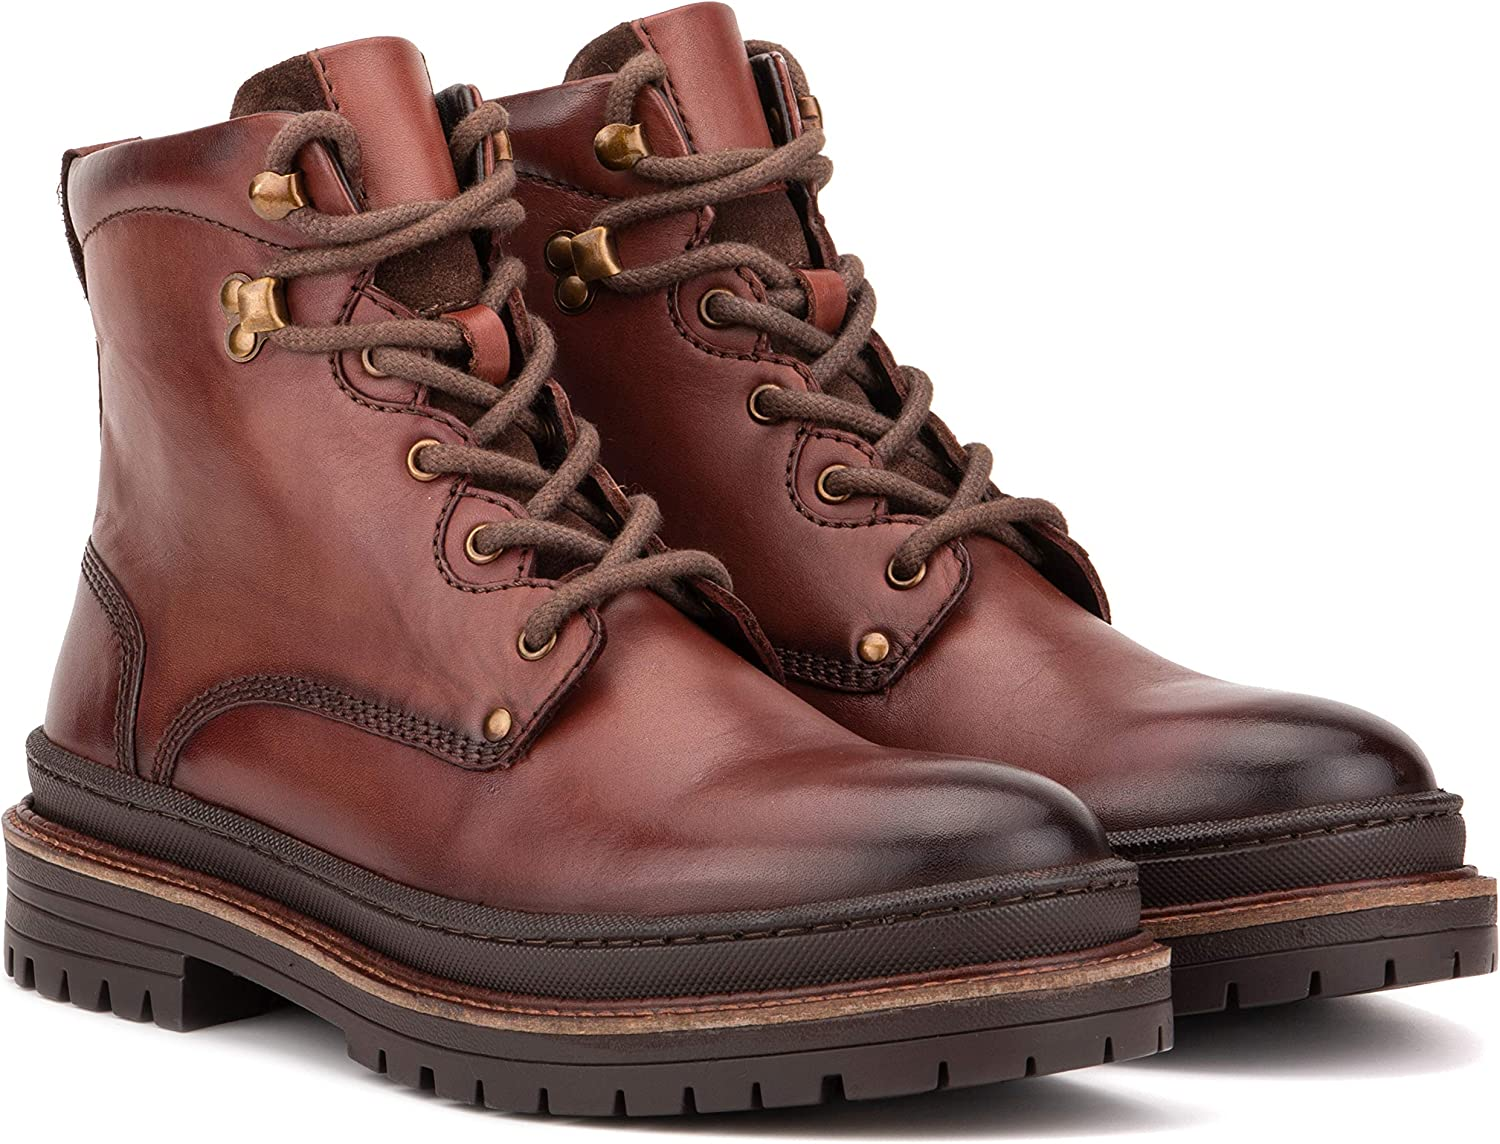 Men boots Men leather lace up boots Handmade Mens fashion Tan color ankle boot